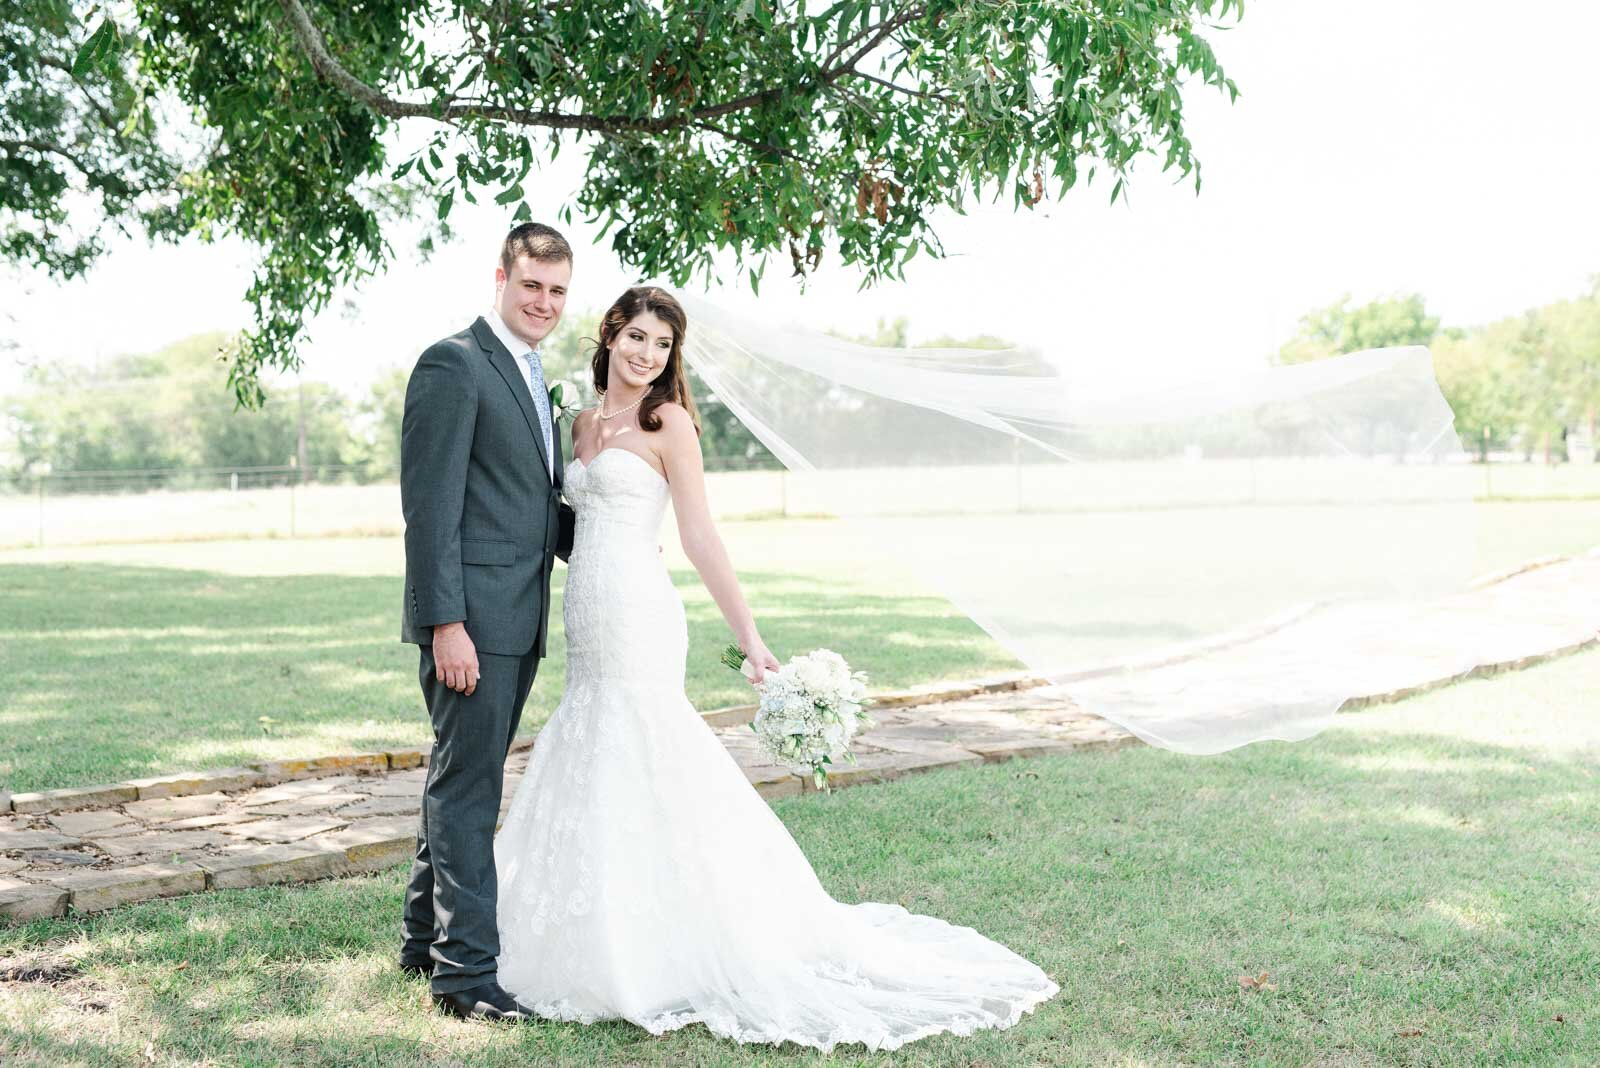 JenSymes_Emilee-Hoyt-Wedding-828.jpg